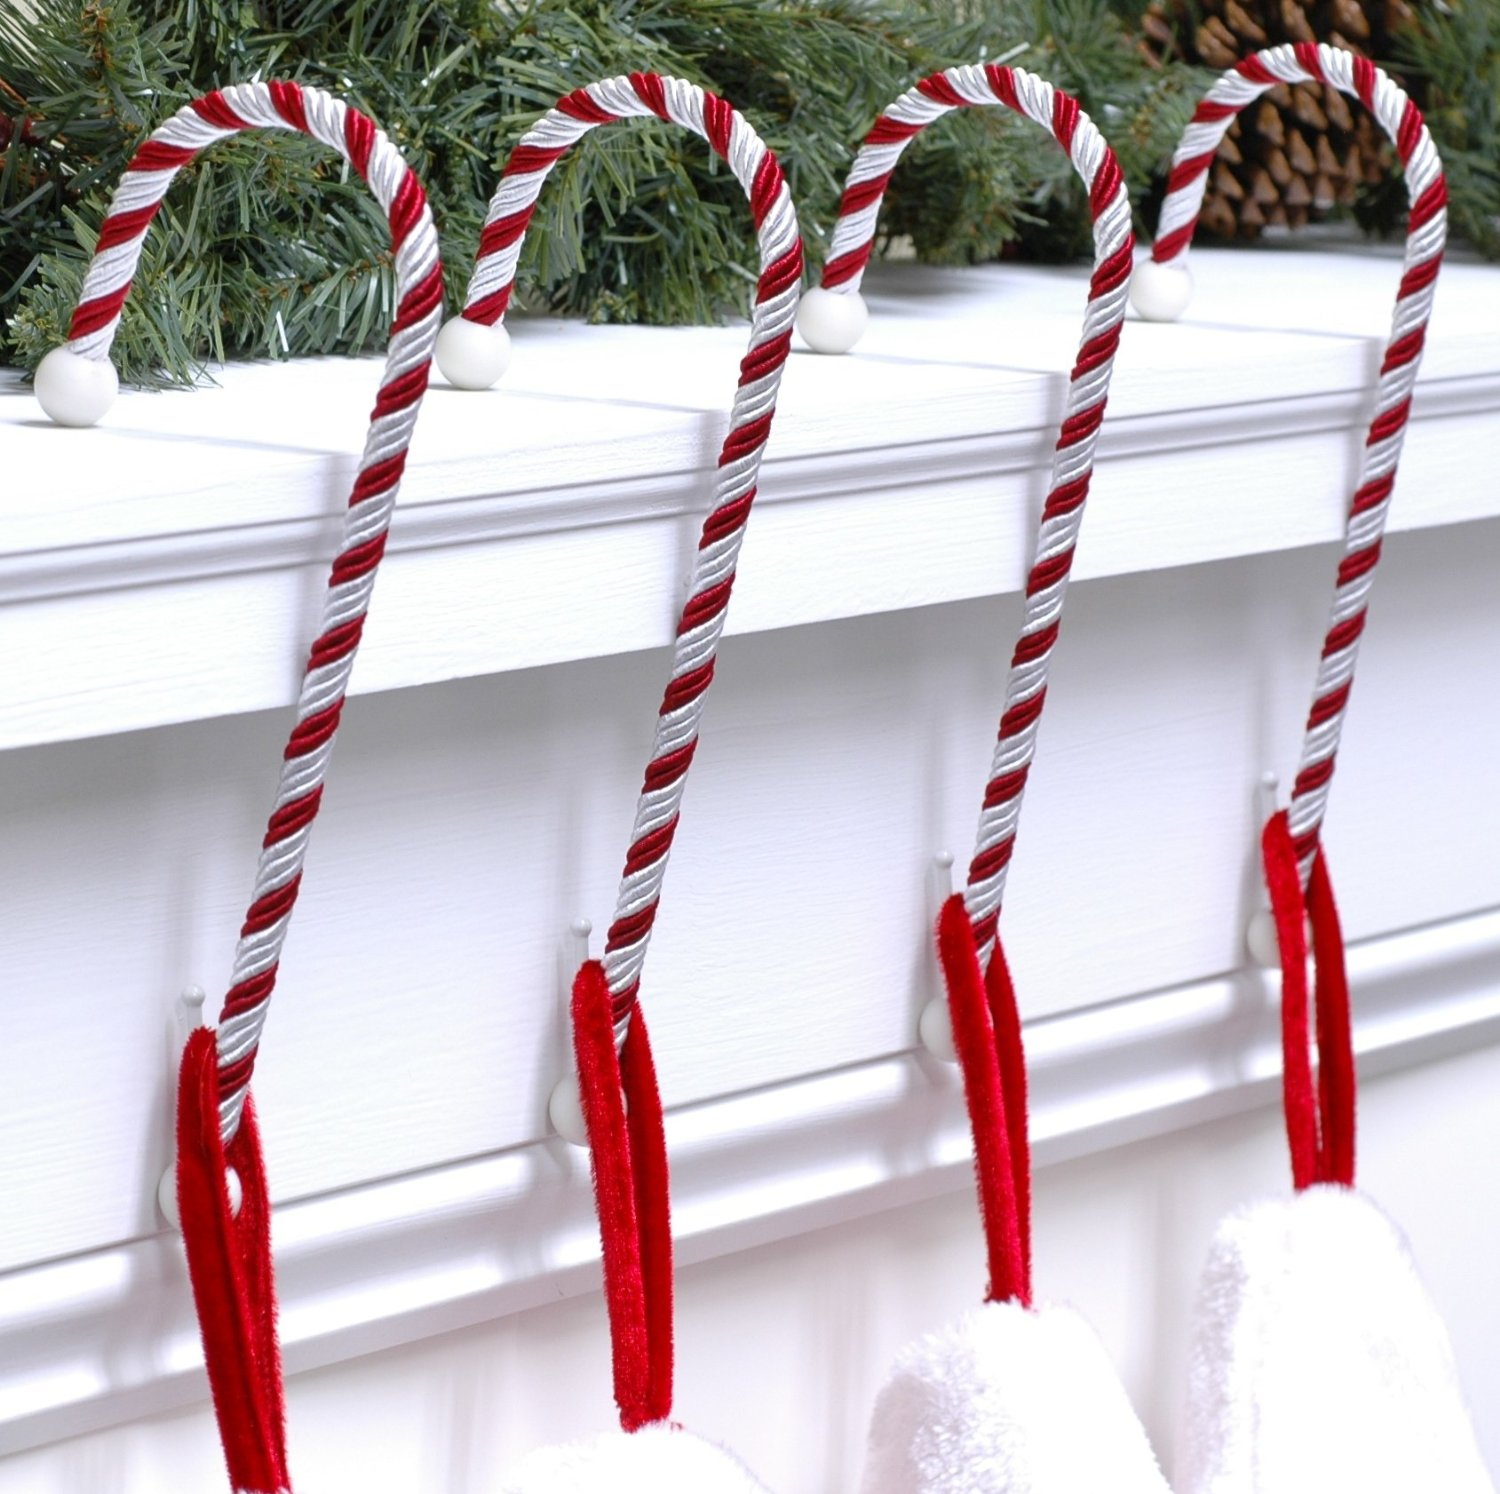 FANCY christmas stocking hanger in stick design and white red color ideas